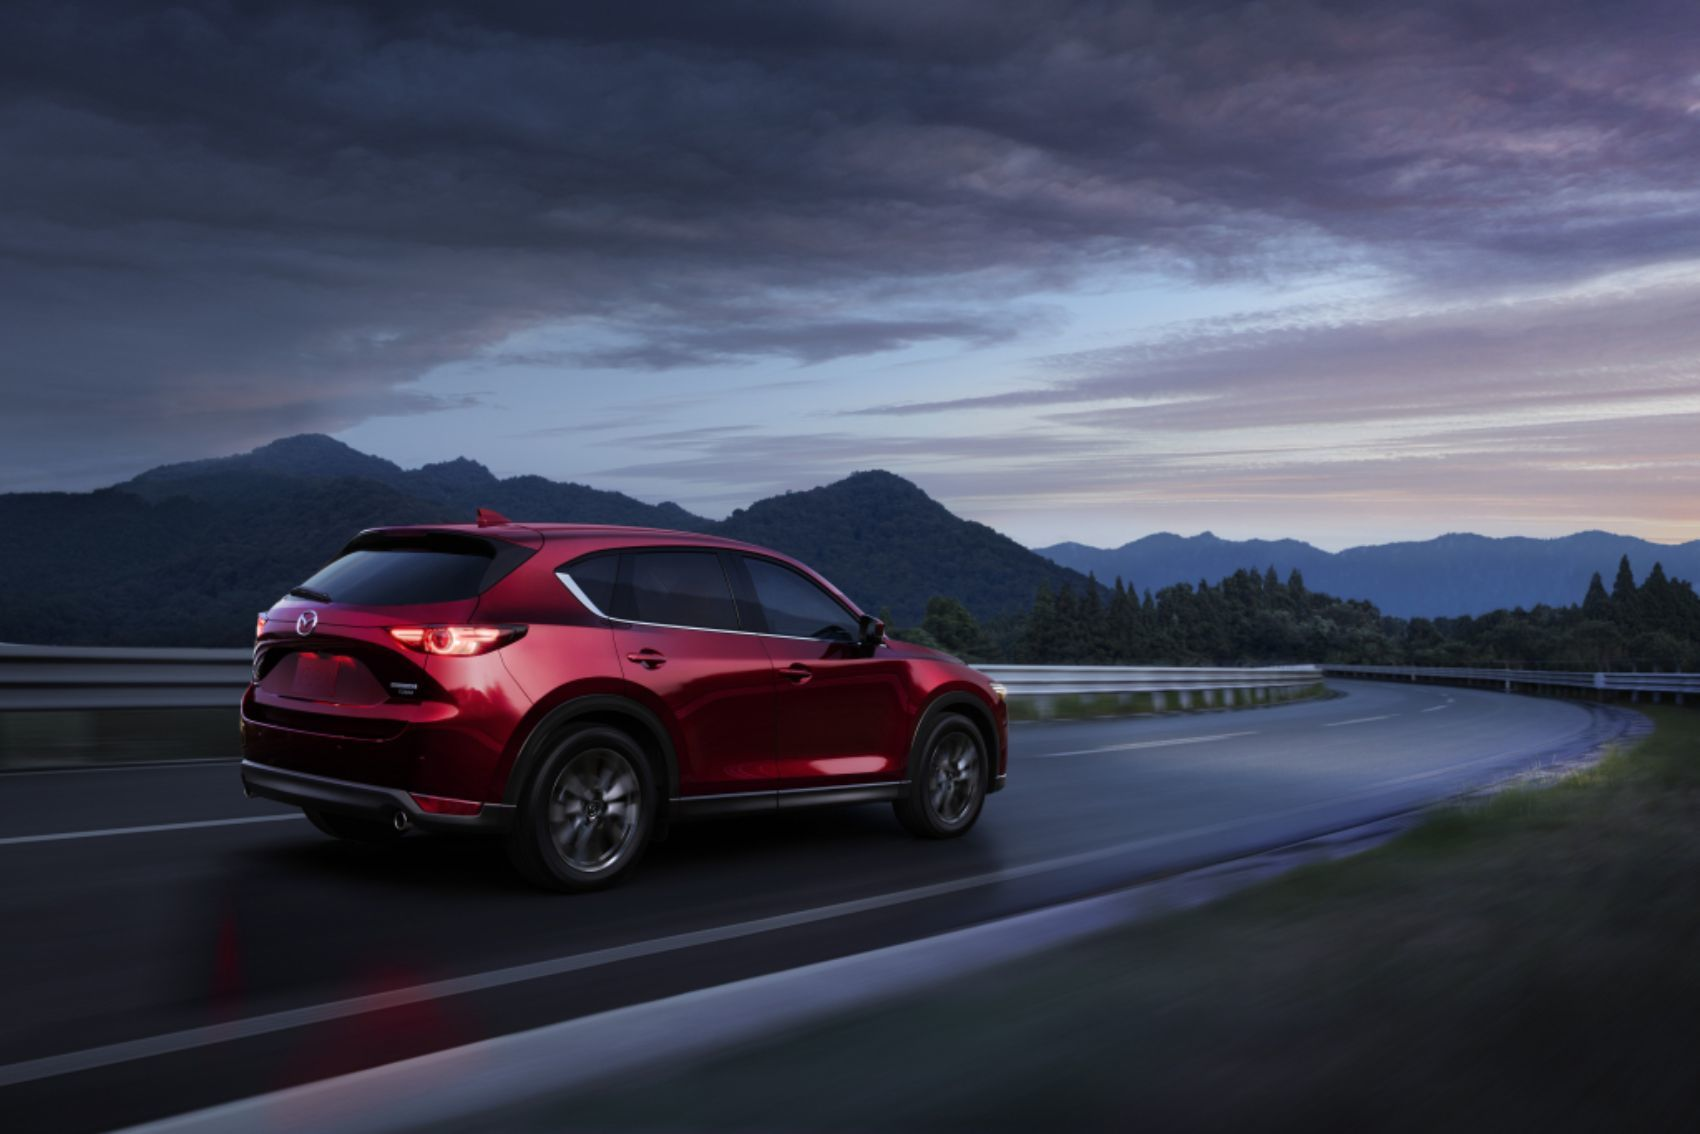 2021 Mazda CX-5: A Complete Look At The Pricing & Trim Levels